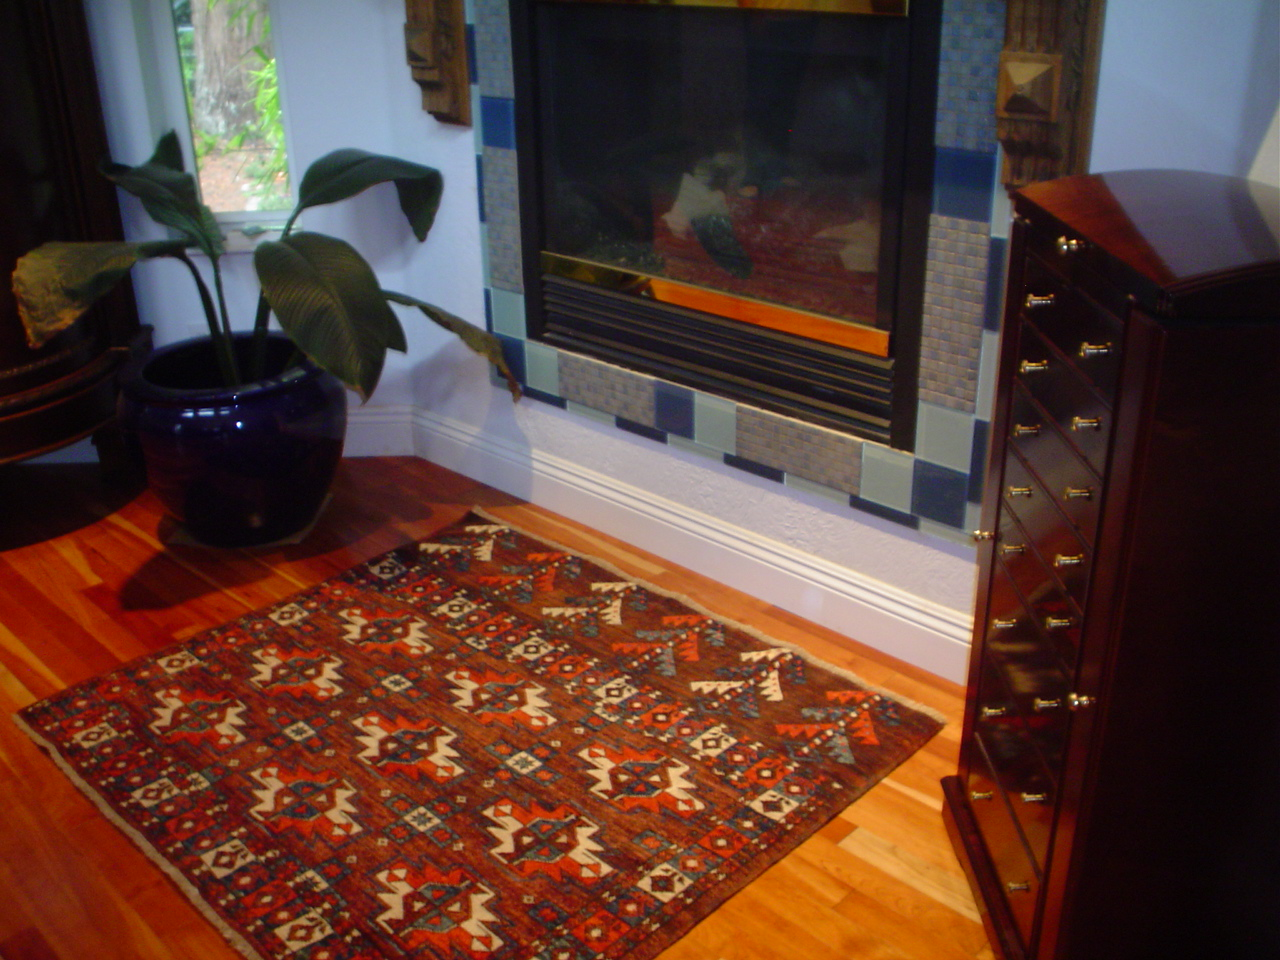 Undercoverruglover Paradise Oriental Rugs New Testimonial - Rugs For In Front Of Fireplace €� Rugs Ideas